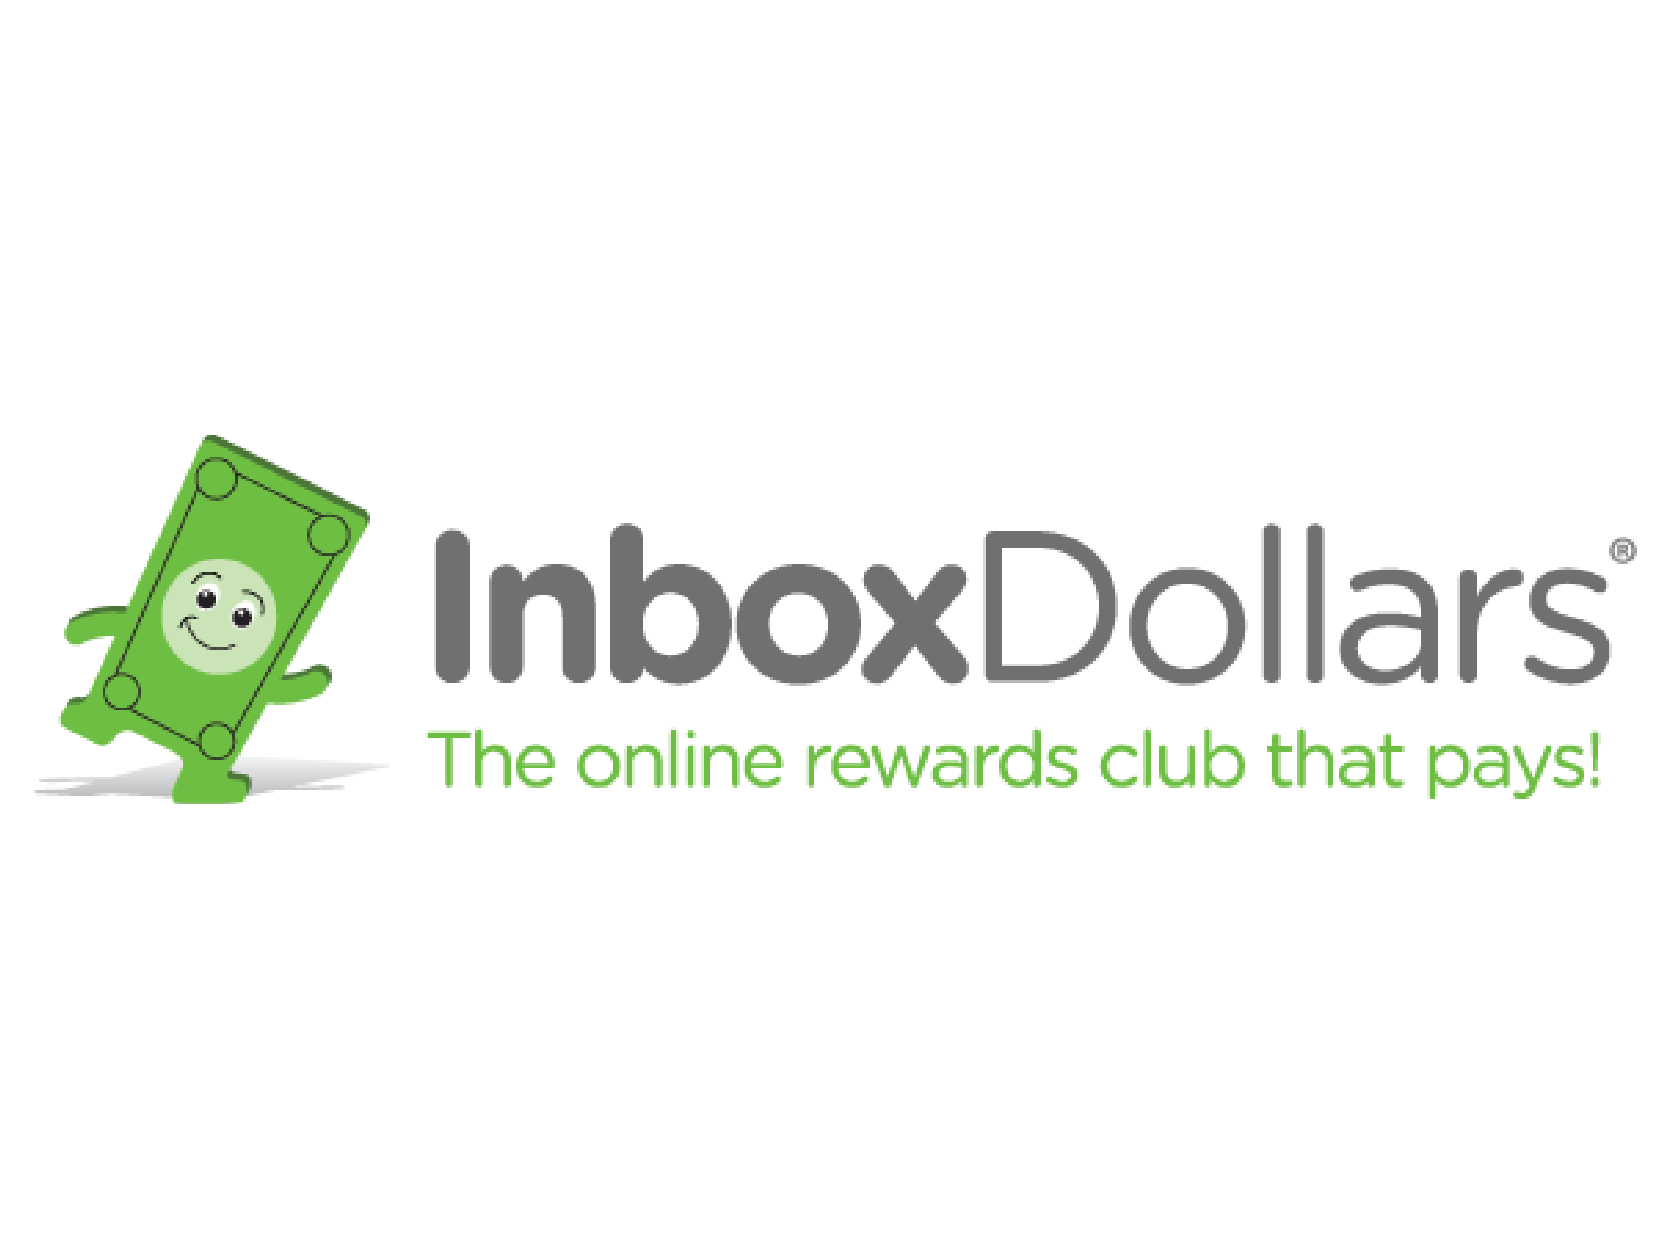 what is inboxdollars about